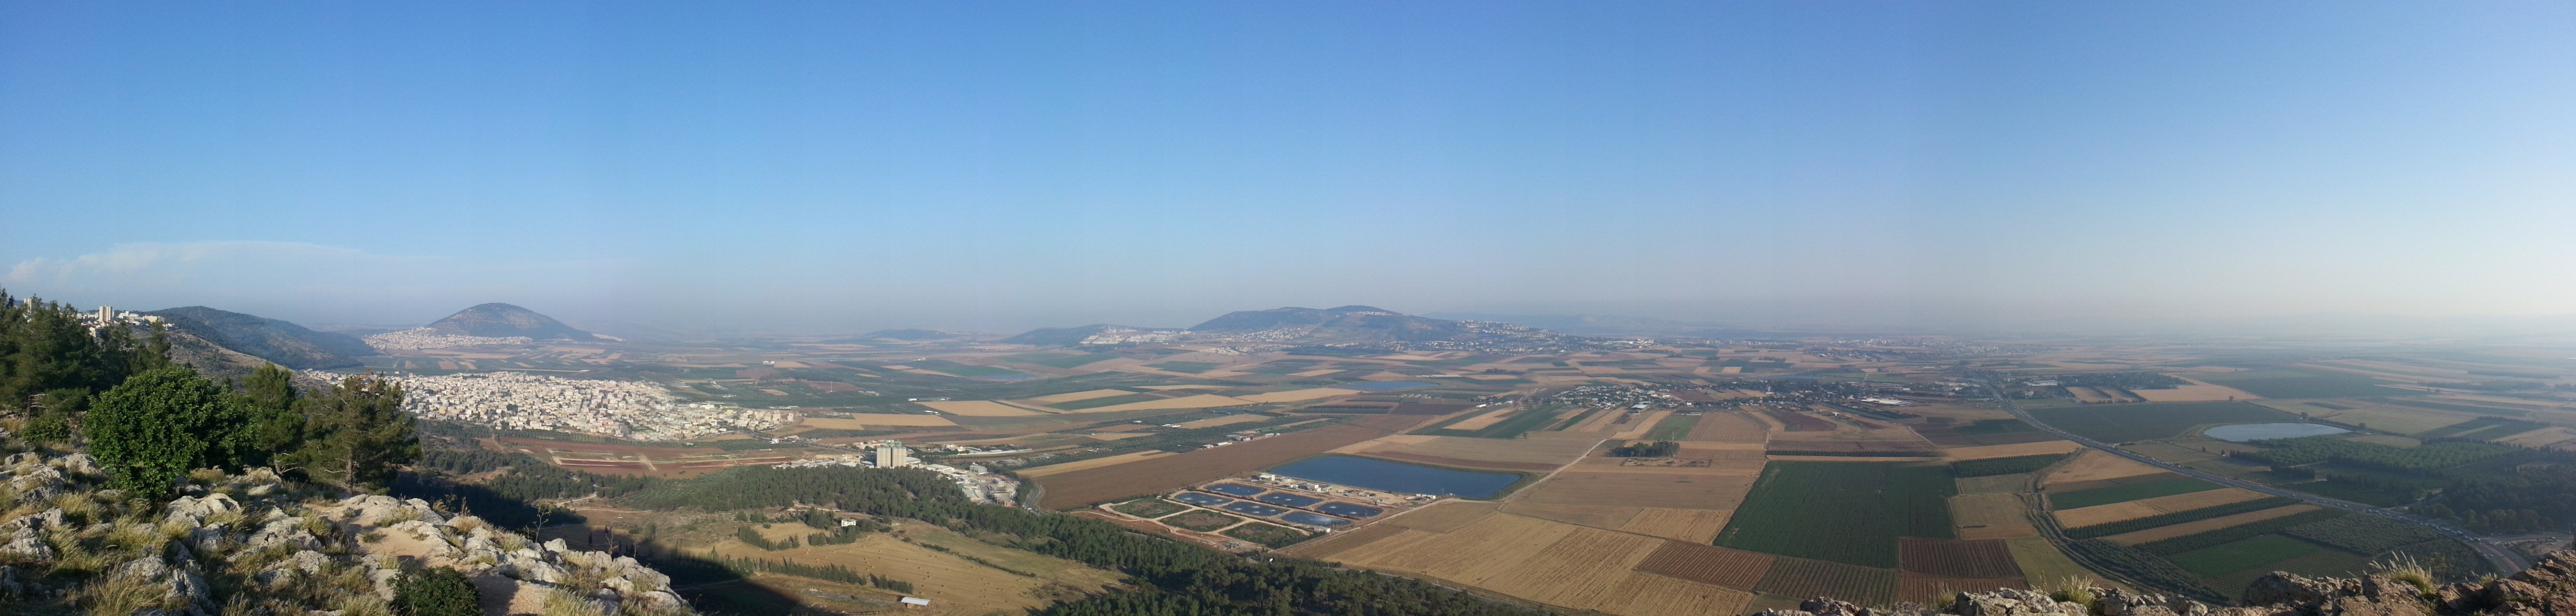 View over the Jezreel Valley from Mount Precipice